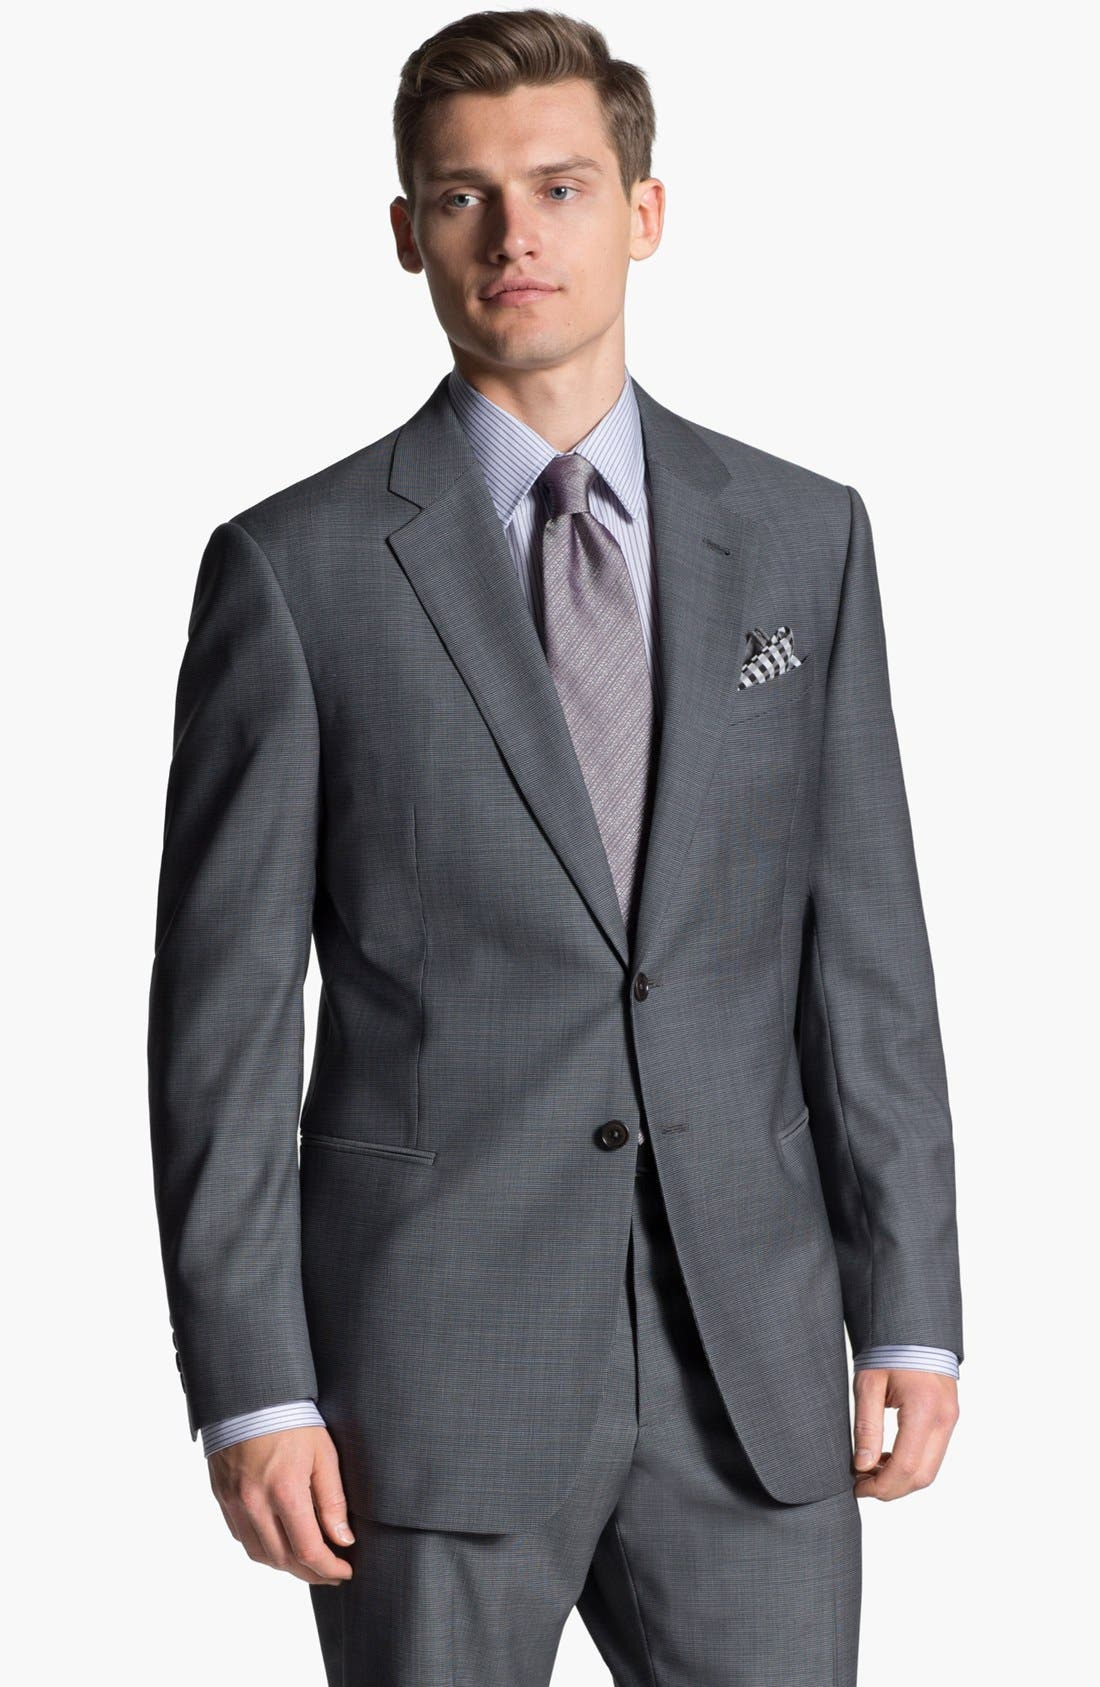 Alternate Image 1 Selected - Armani Collezioni 'Giorgio' Tic Weave Wool Suit